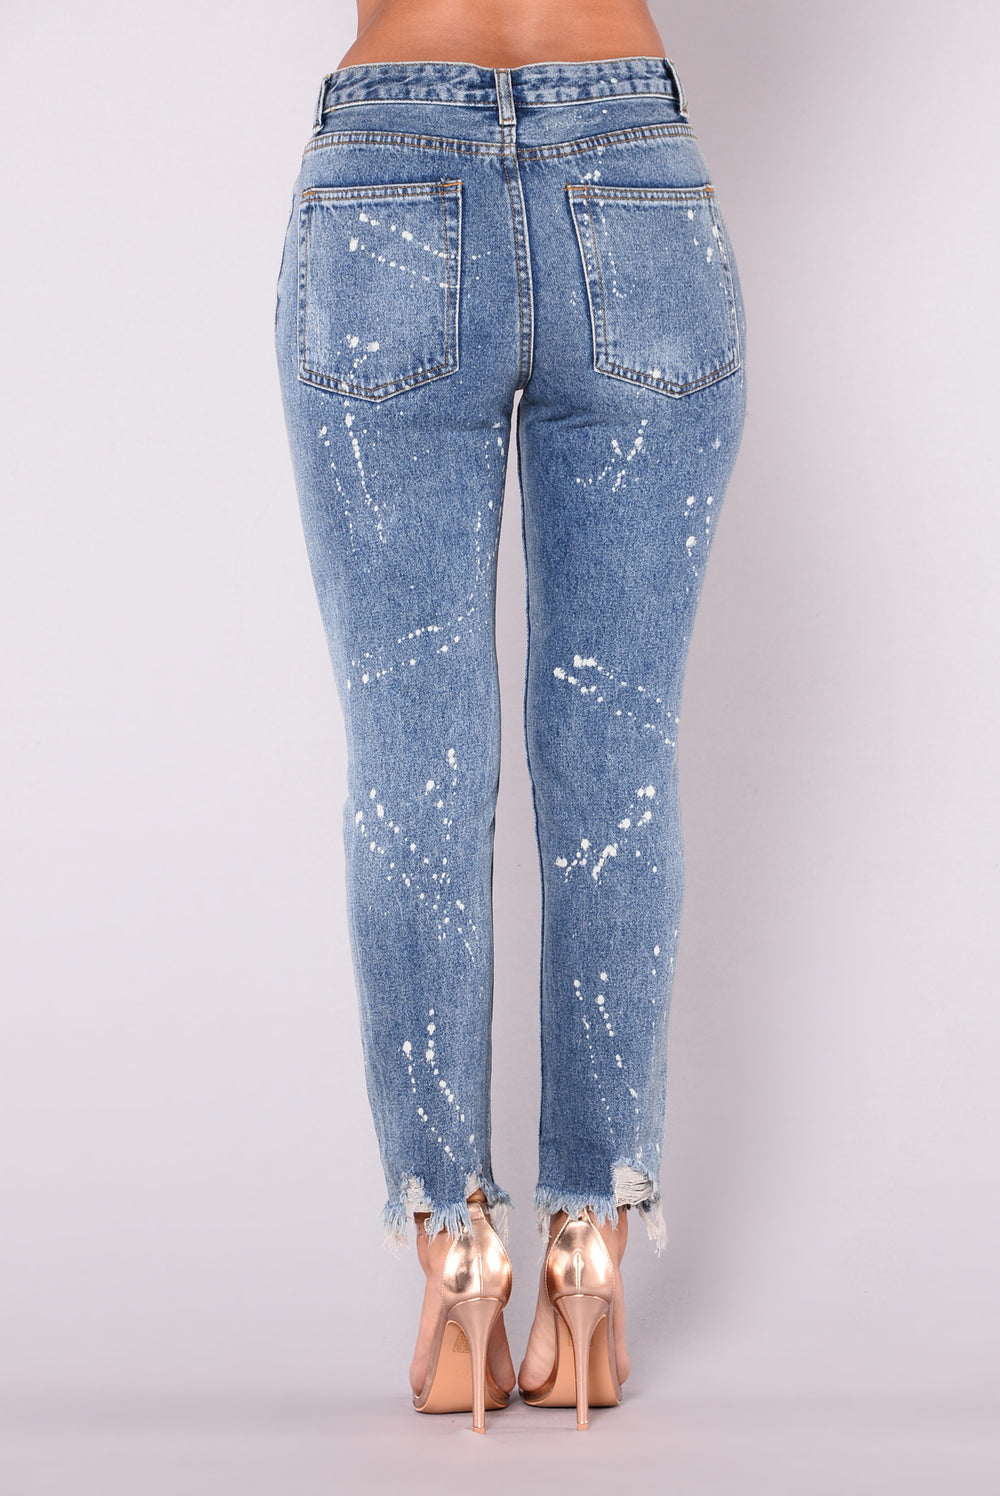 Posy Distress And Paint Jeans - Medium Blue